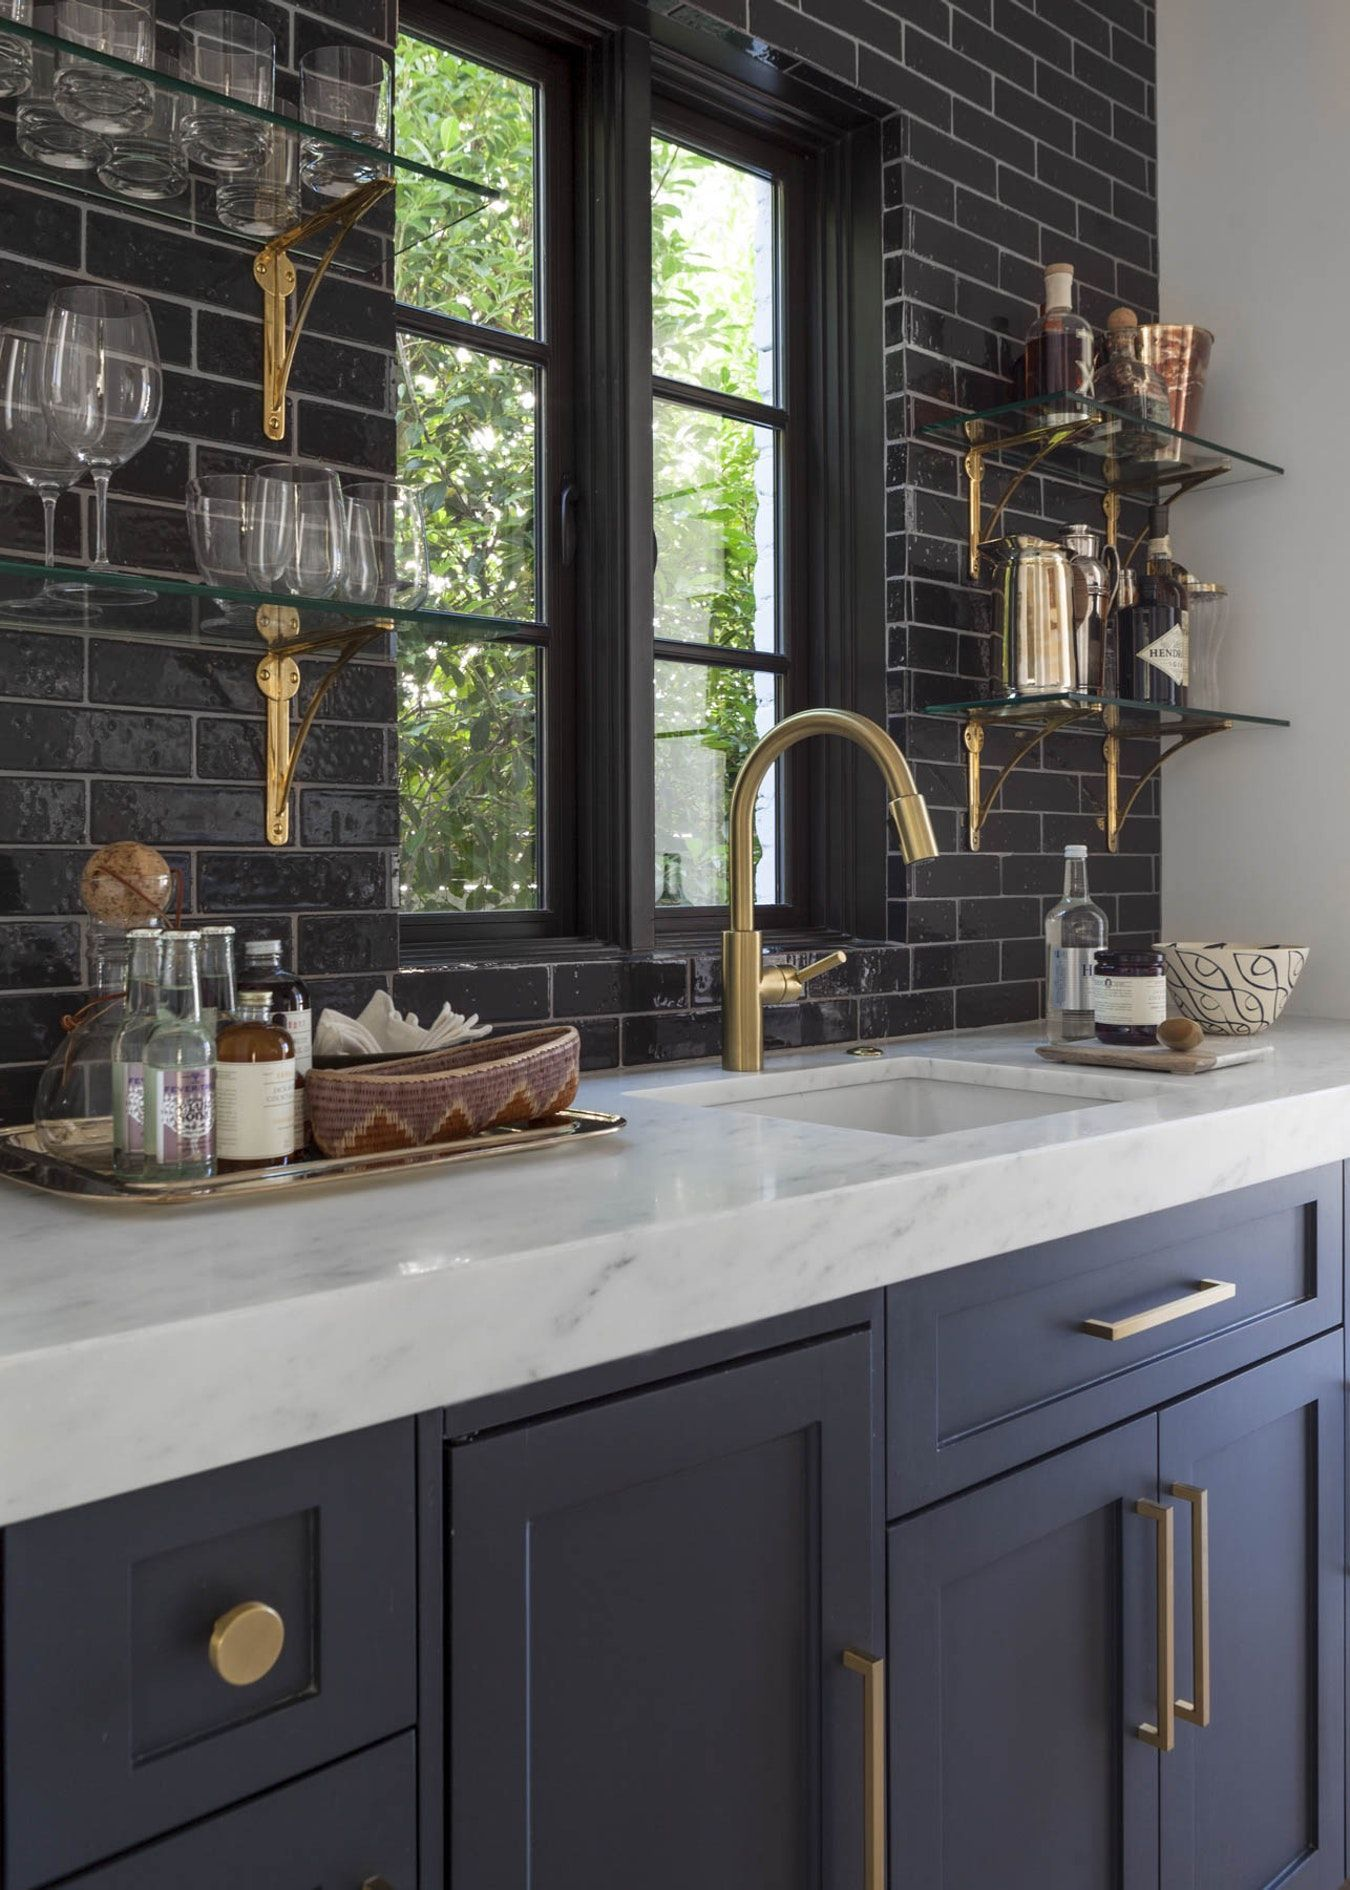 The 10 Best Kitchens On Pinterest With Gold Hardware Living After Midnite Dark Blue Kitchen Cabinets Blue Kitchen Cabinets Dark Blue Kitchens